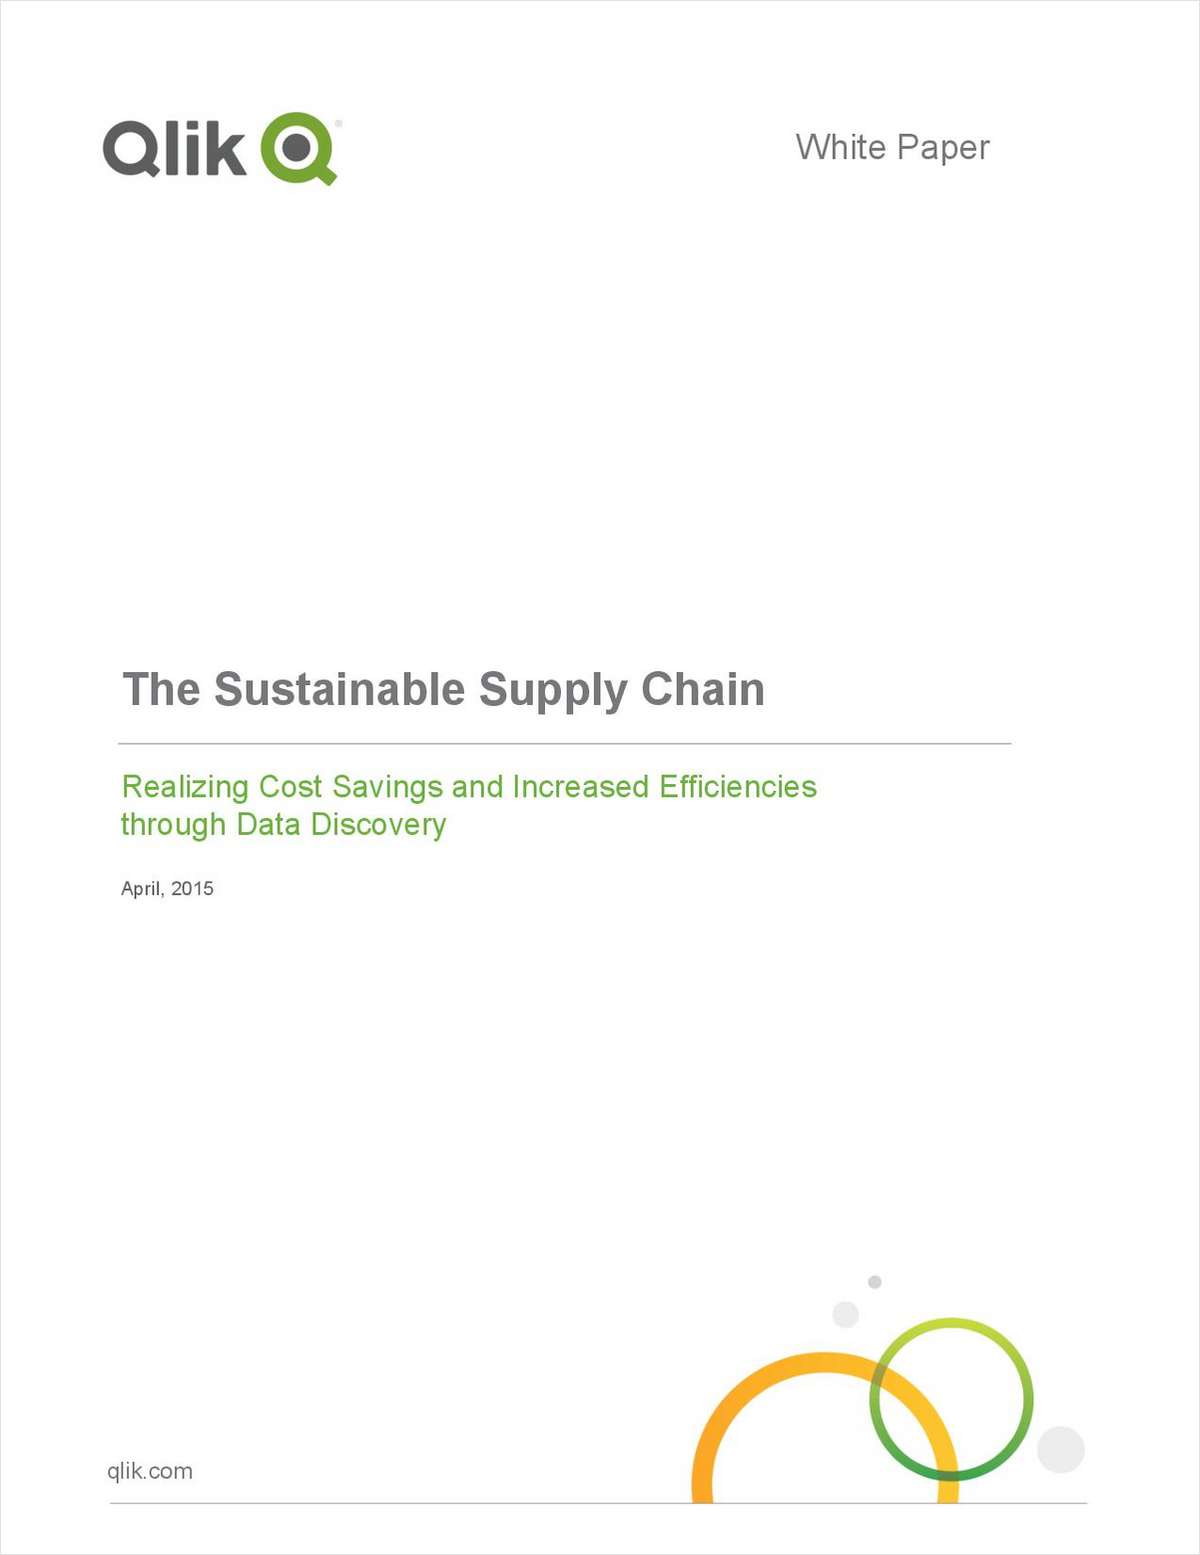 The Sustainable Supply Chain: Realizing Costs Savings and Increased Efficiencies Through Data Discovery